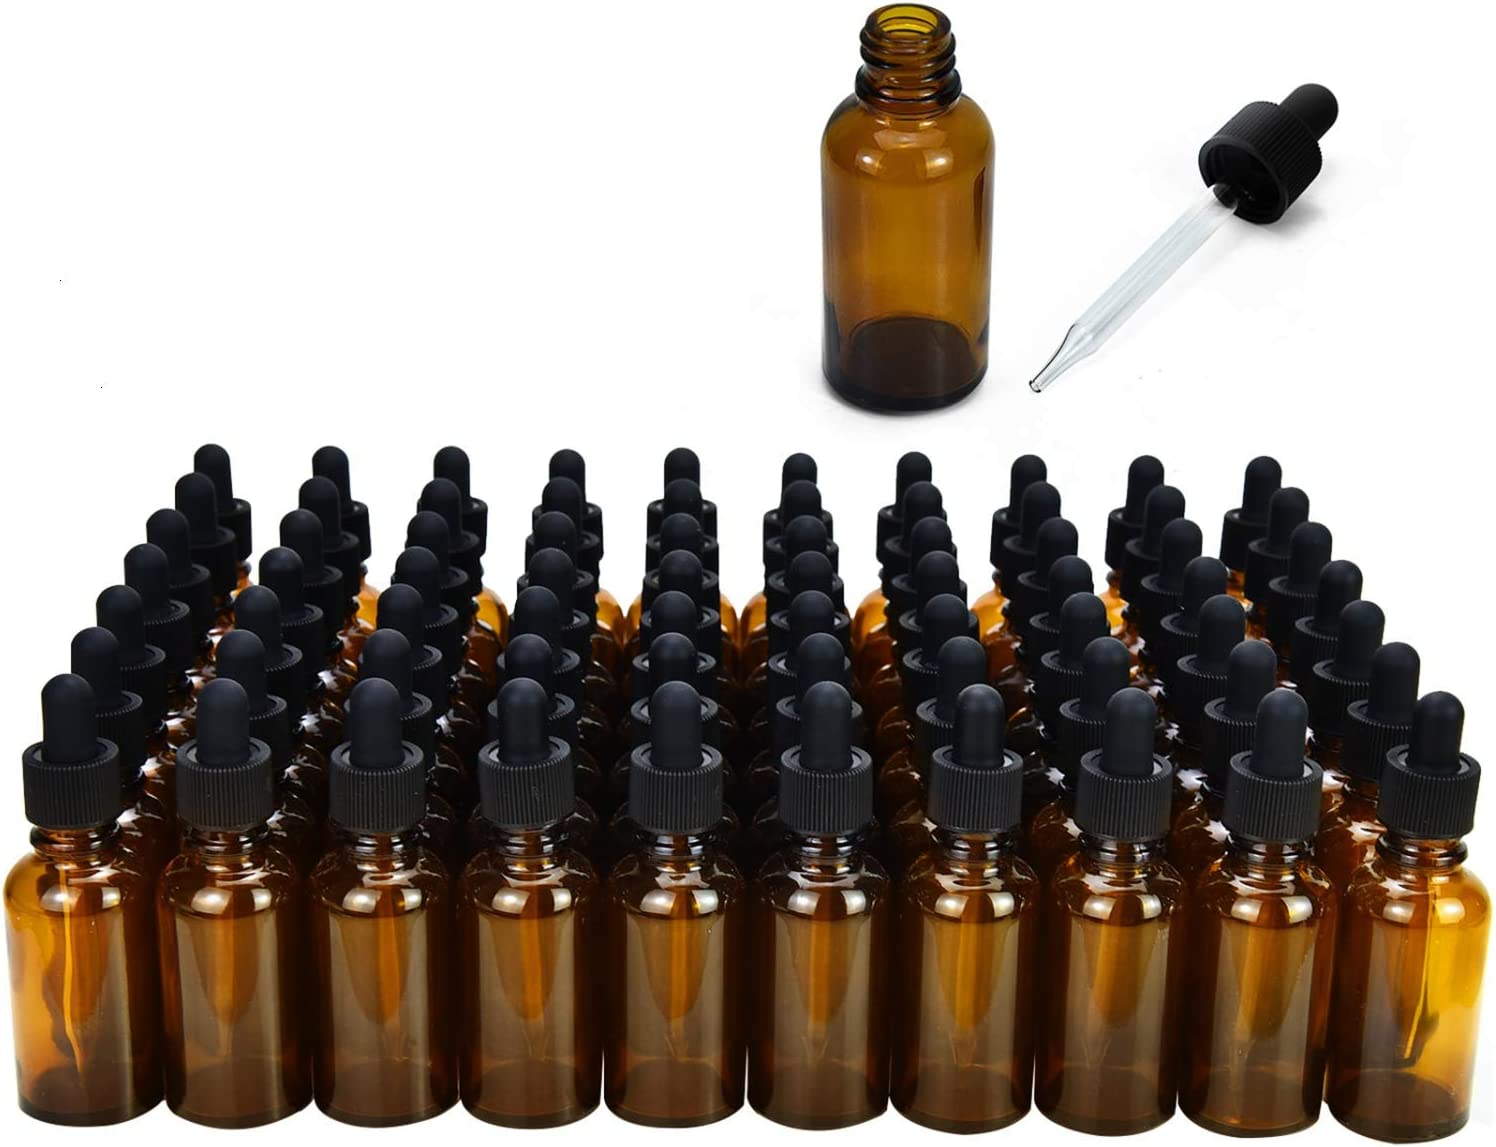 June Fox Glass Dropper Bottle,99 Pack 1oz Amber Glass Bottles with Glass Droppers and Black Cap for Essential Oils, Lab Chemicals, Perfumes